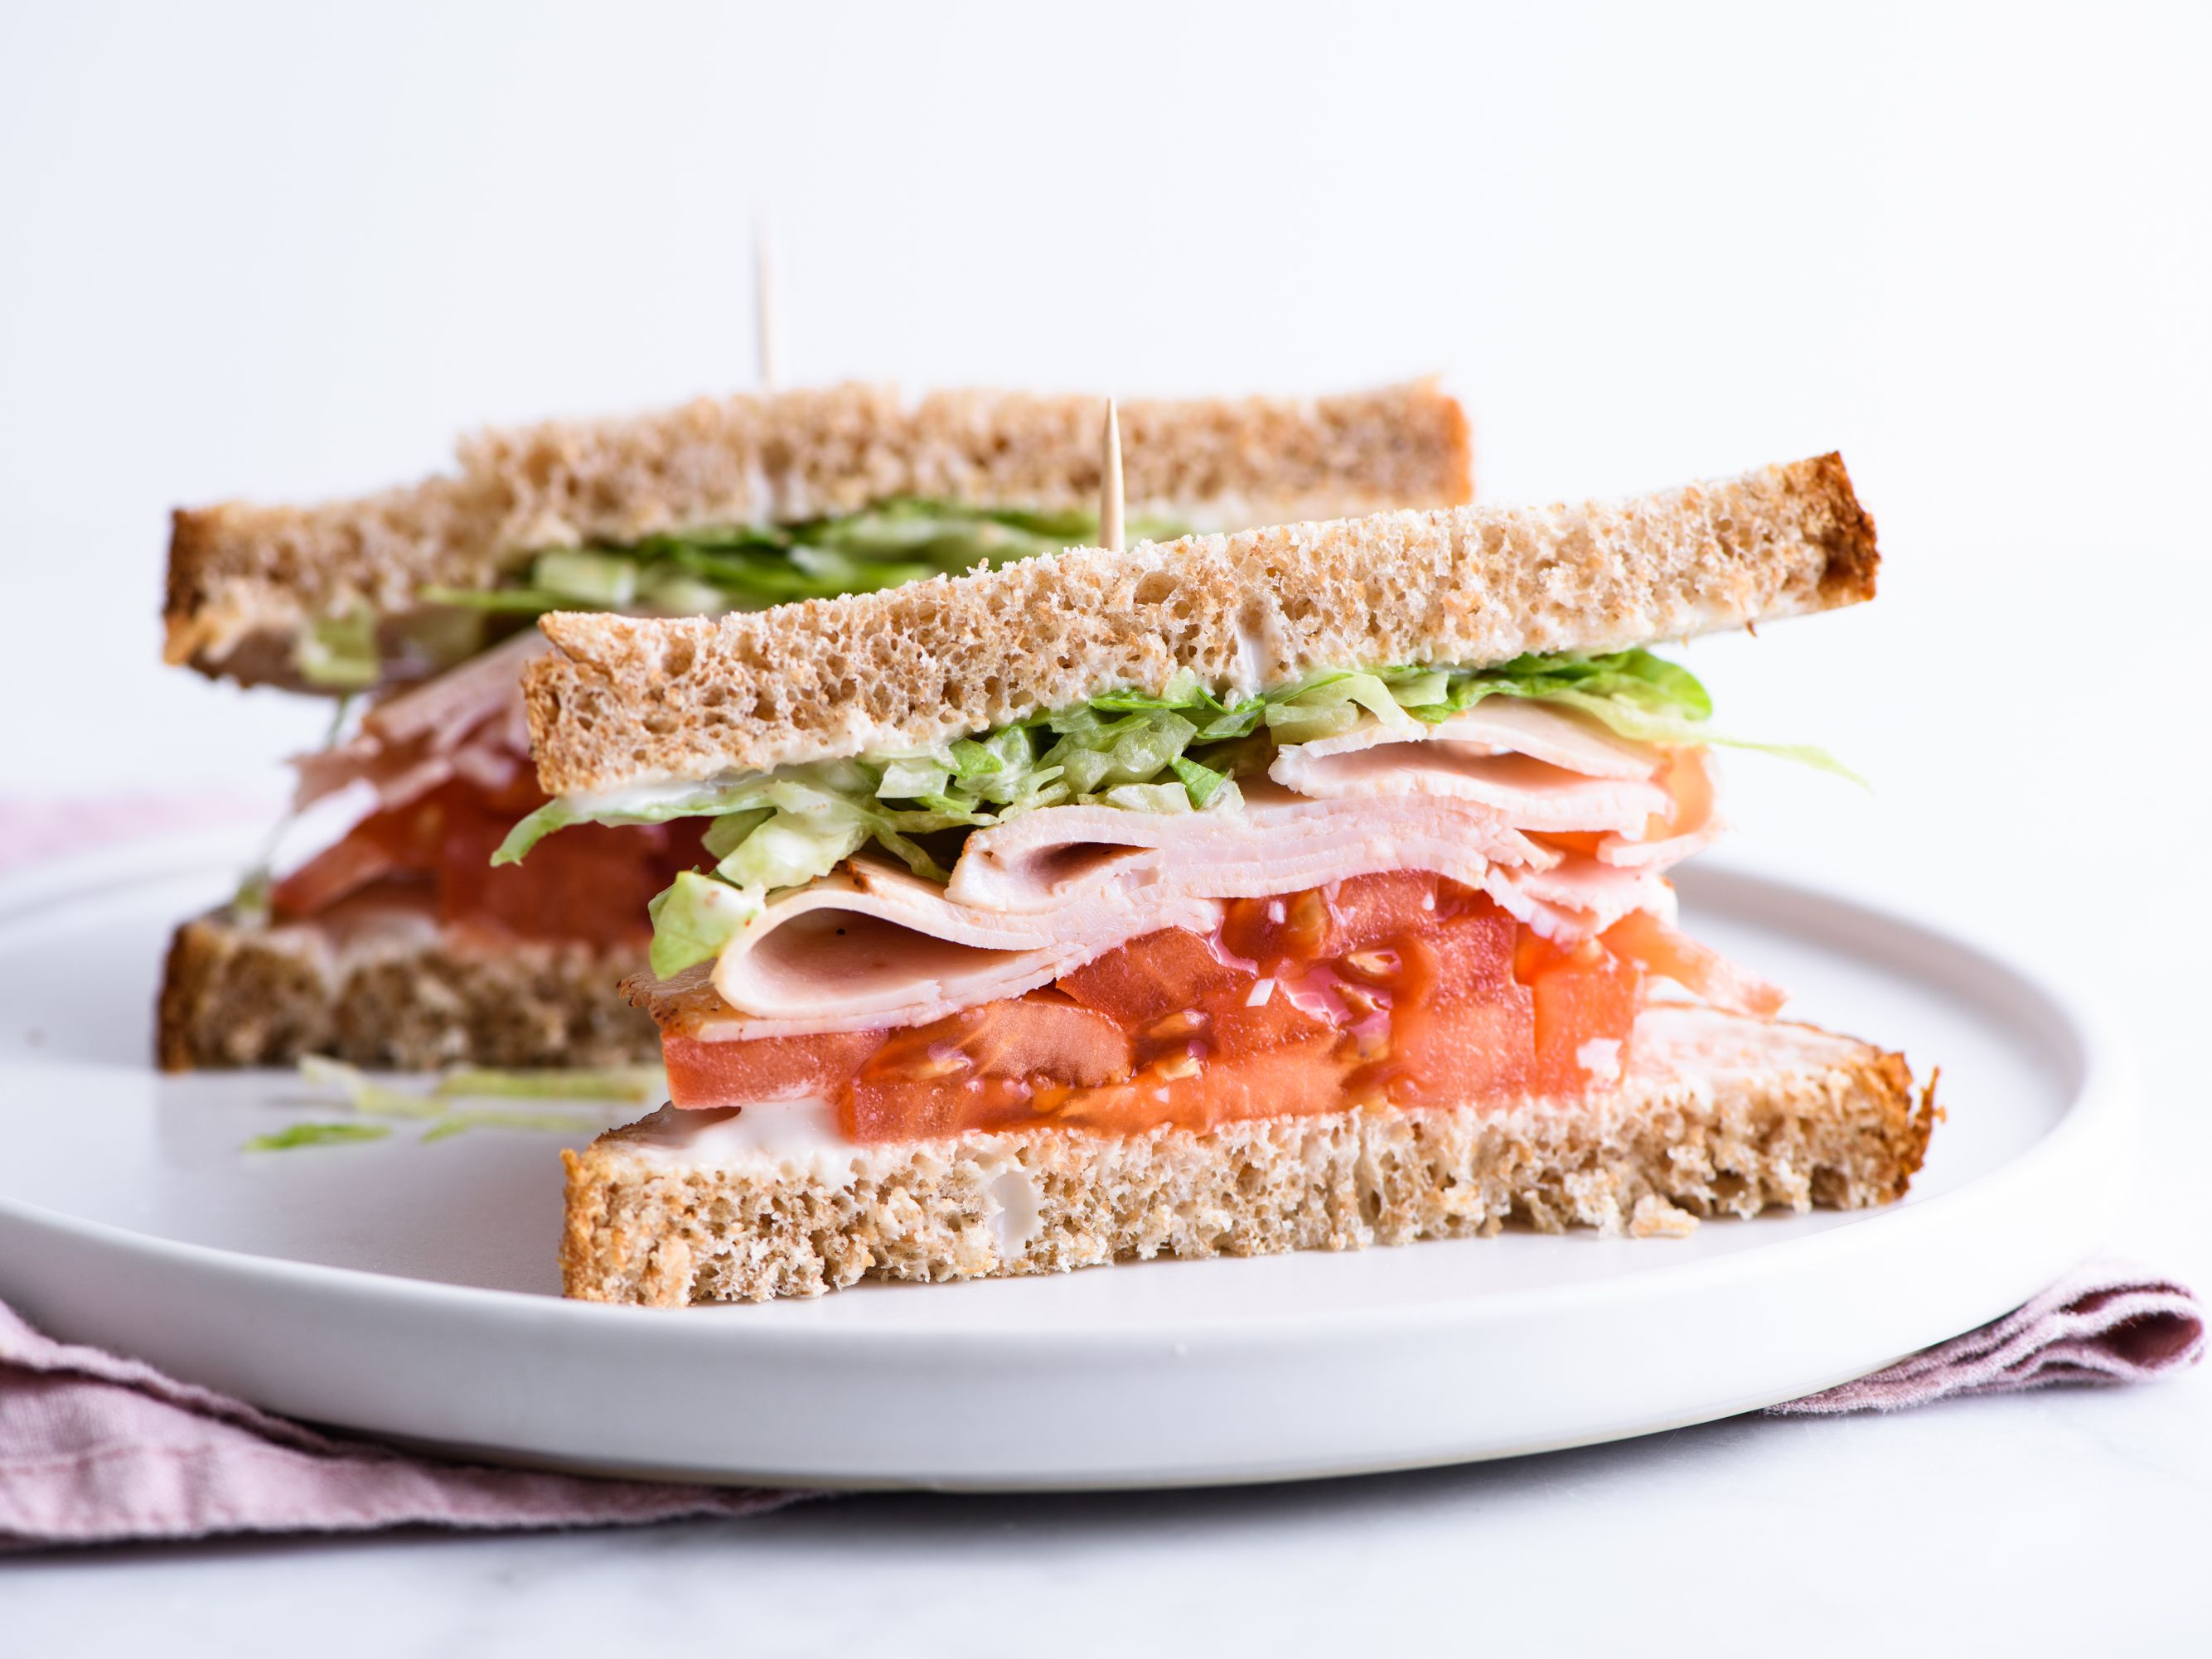 Sandwich Nutrition Facts and Health